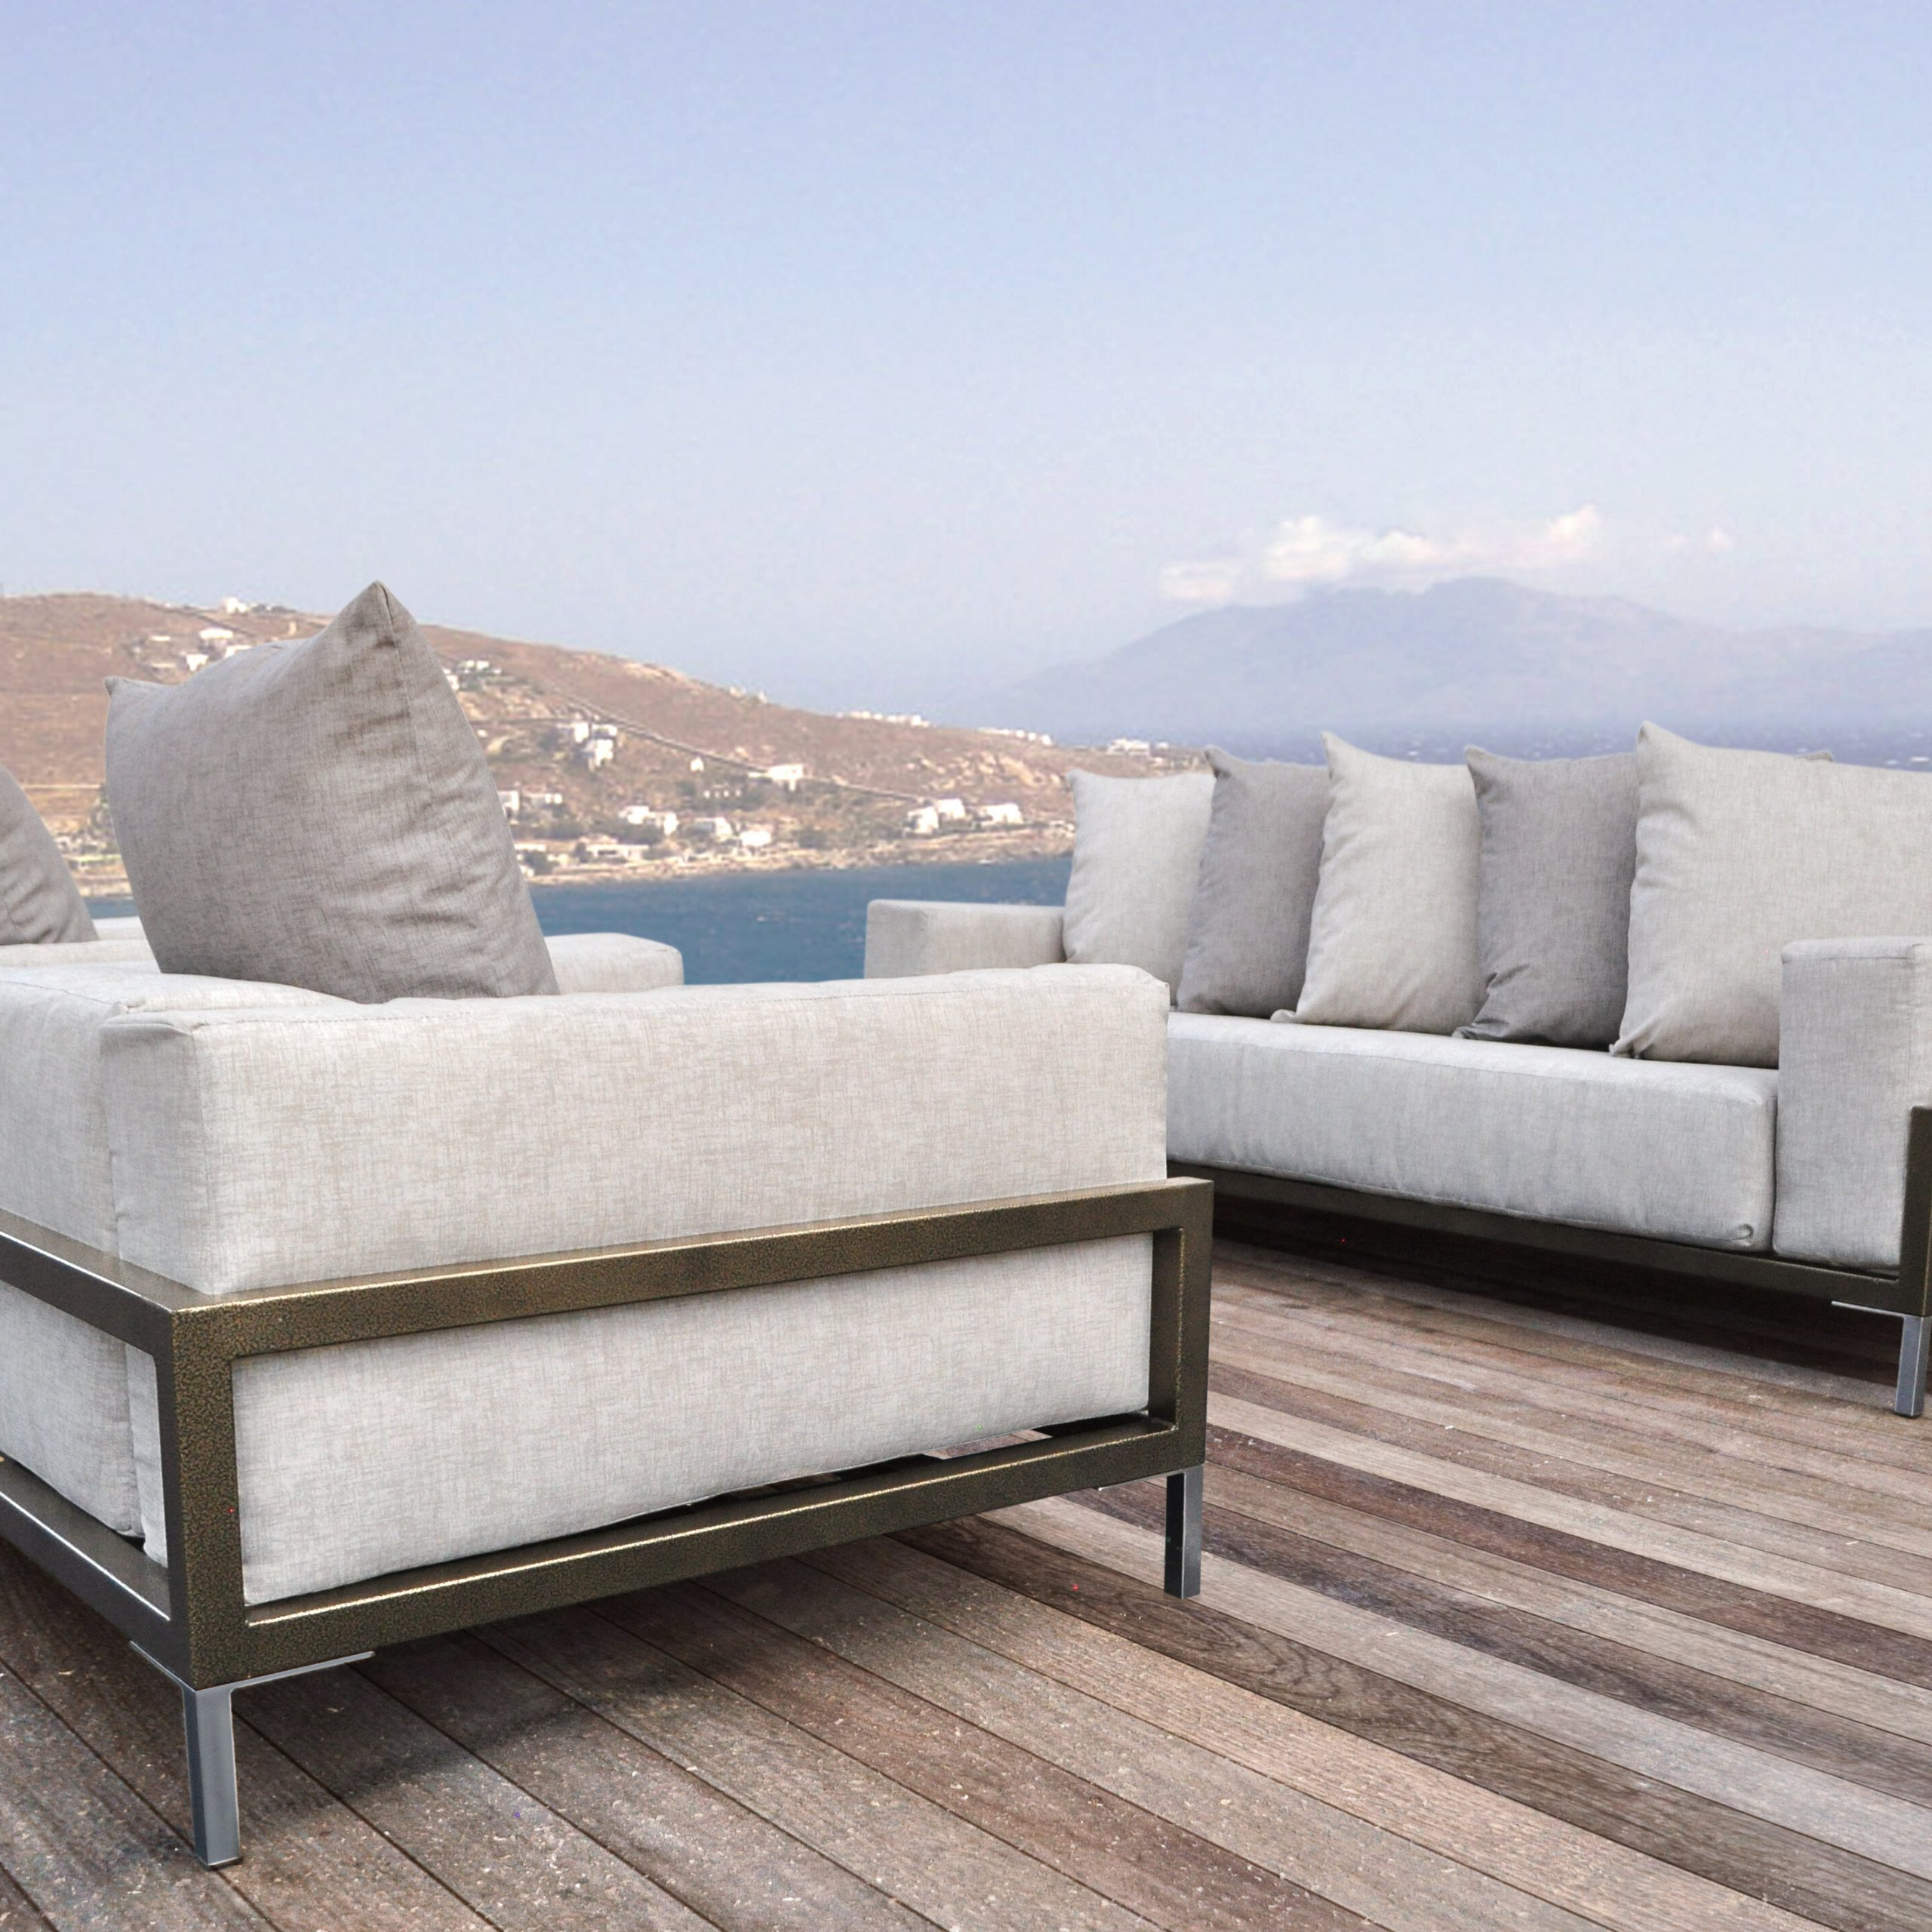 Preferred Salvato Sofas With Cushion Inside Tilly 3 Piece Sunbrella Sofa Set With Cushions (View 17 of 25)